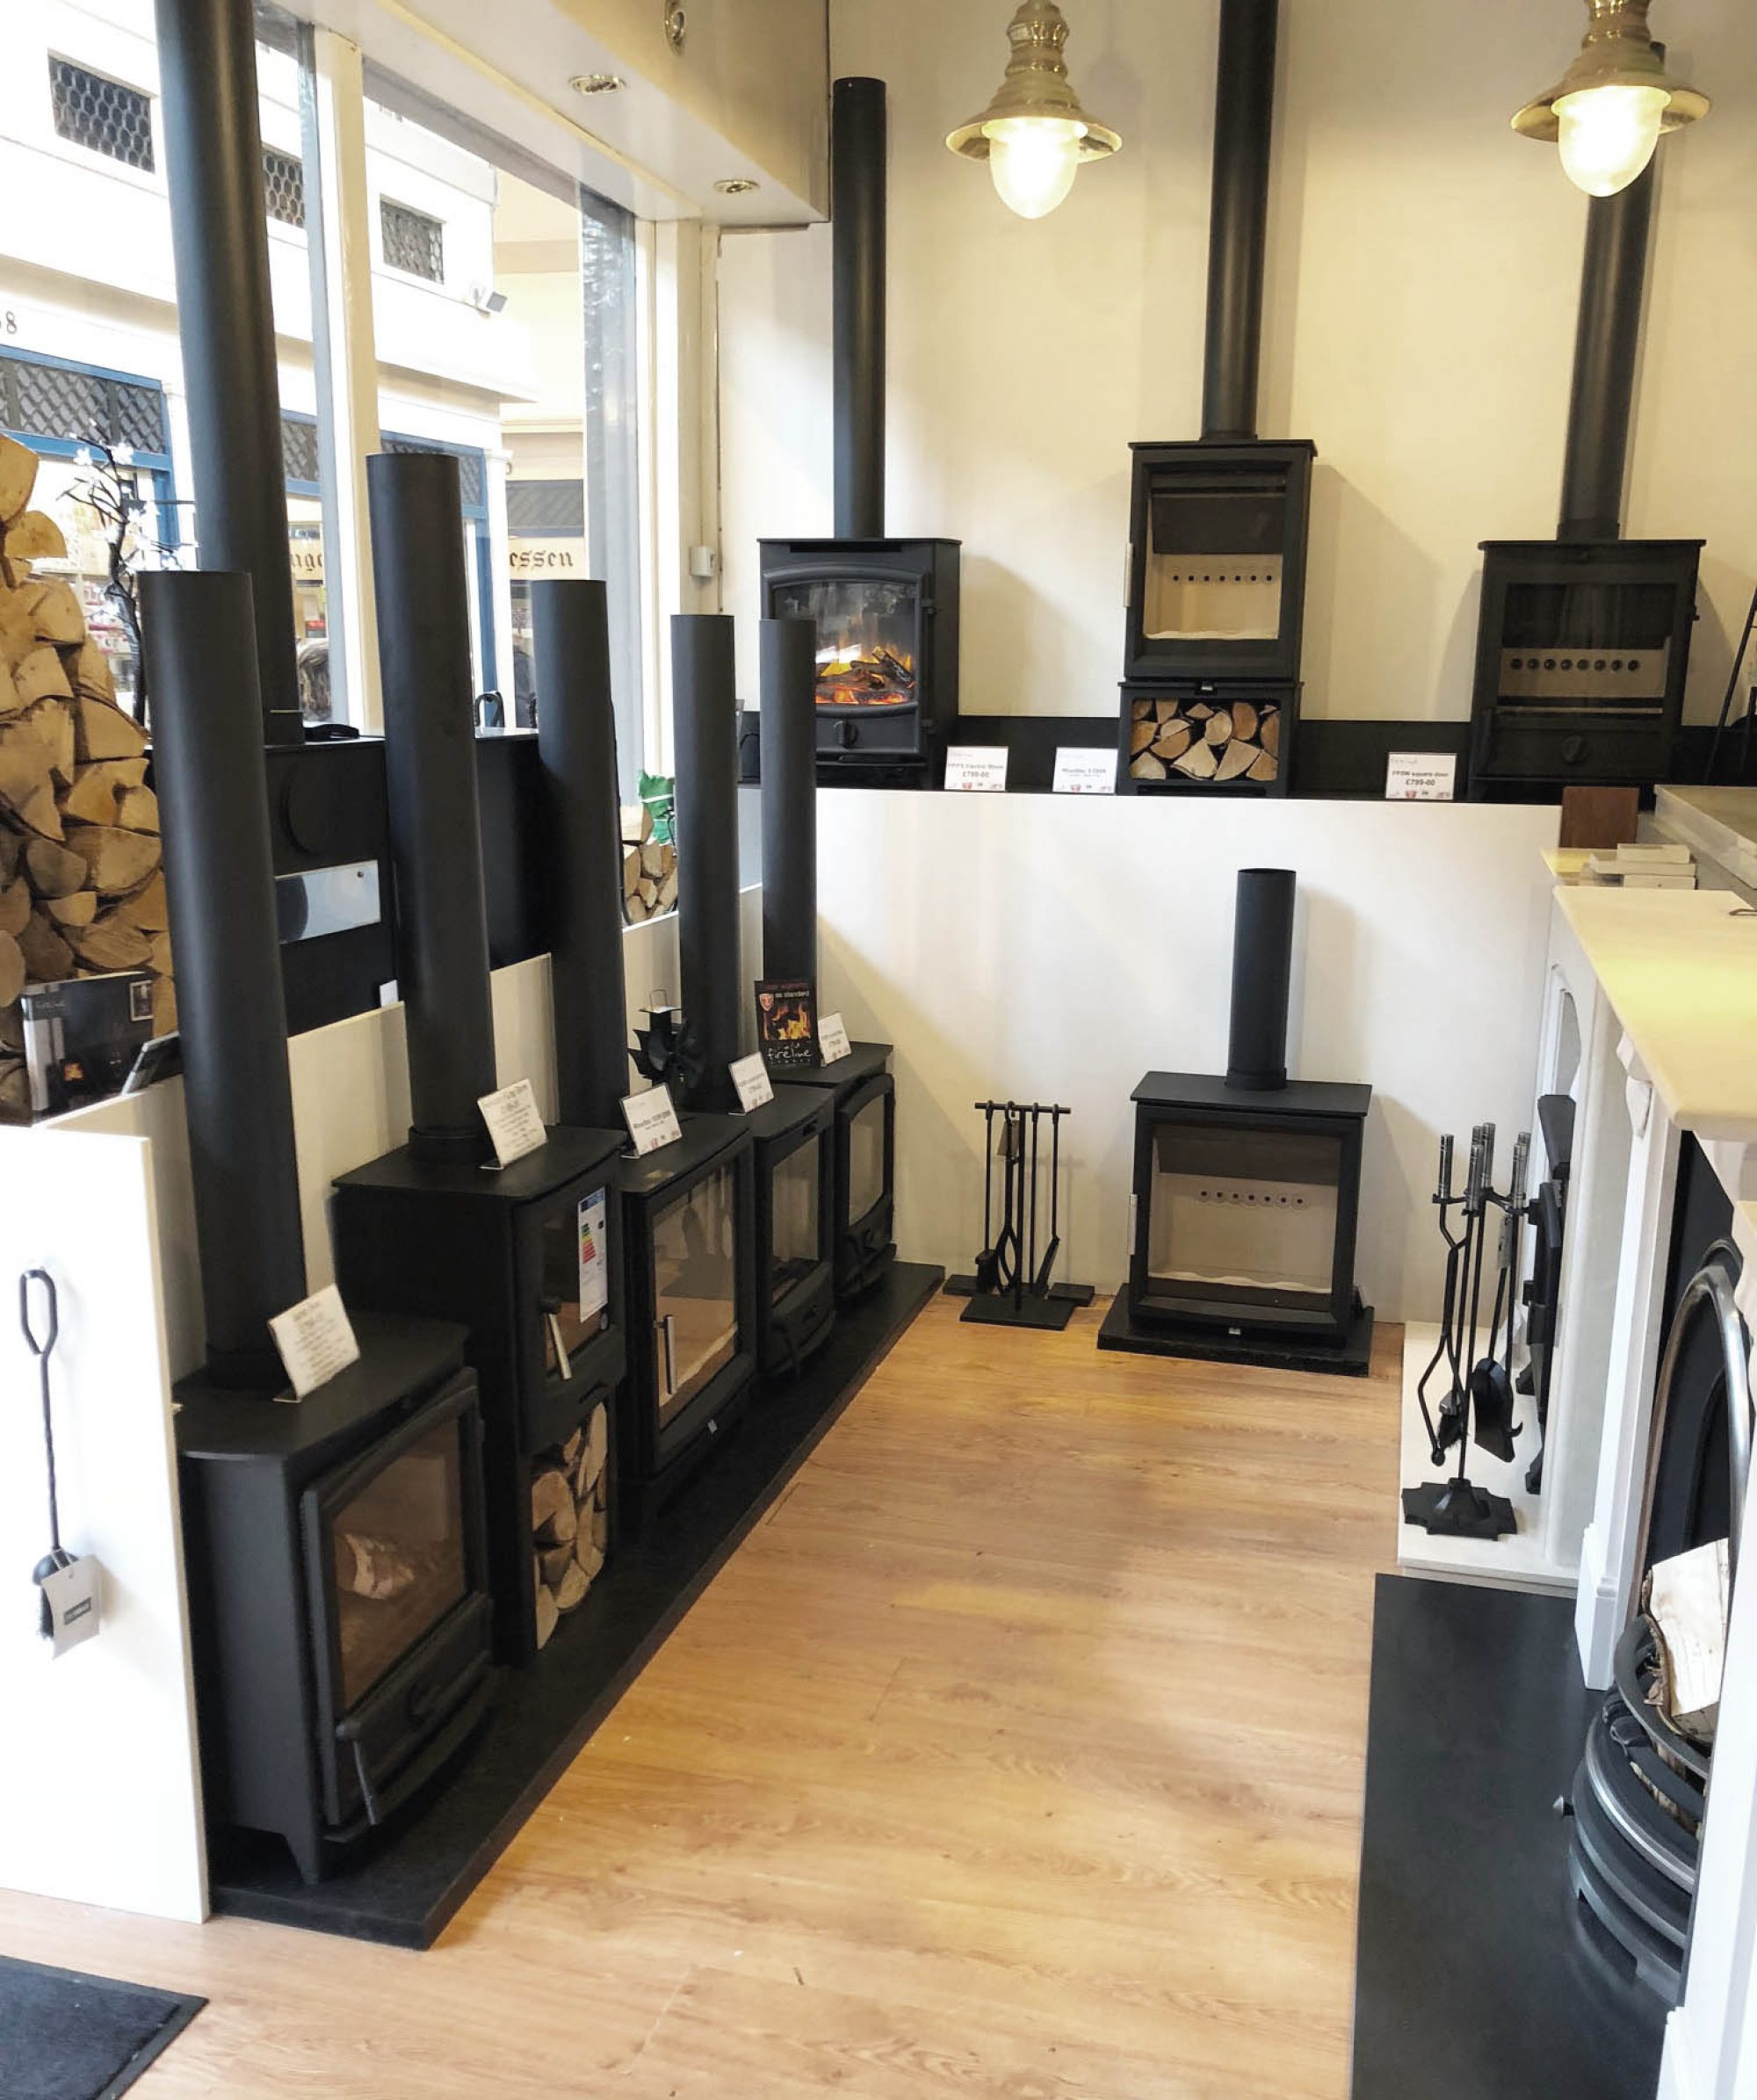 Grainger Fireplaces and Stoves